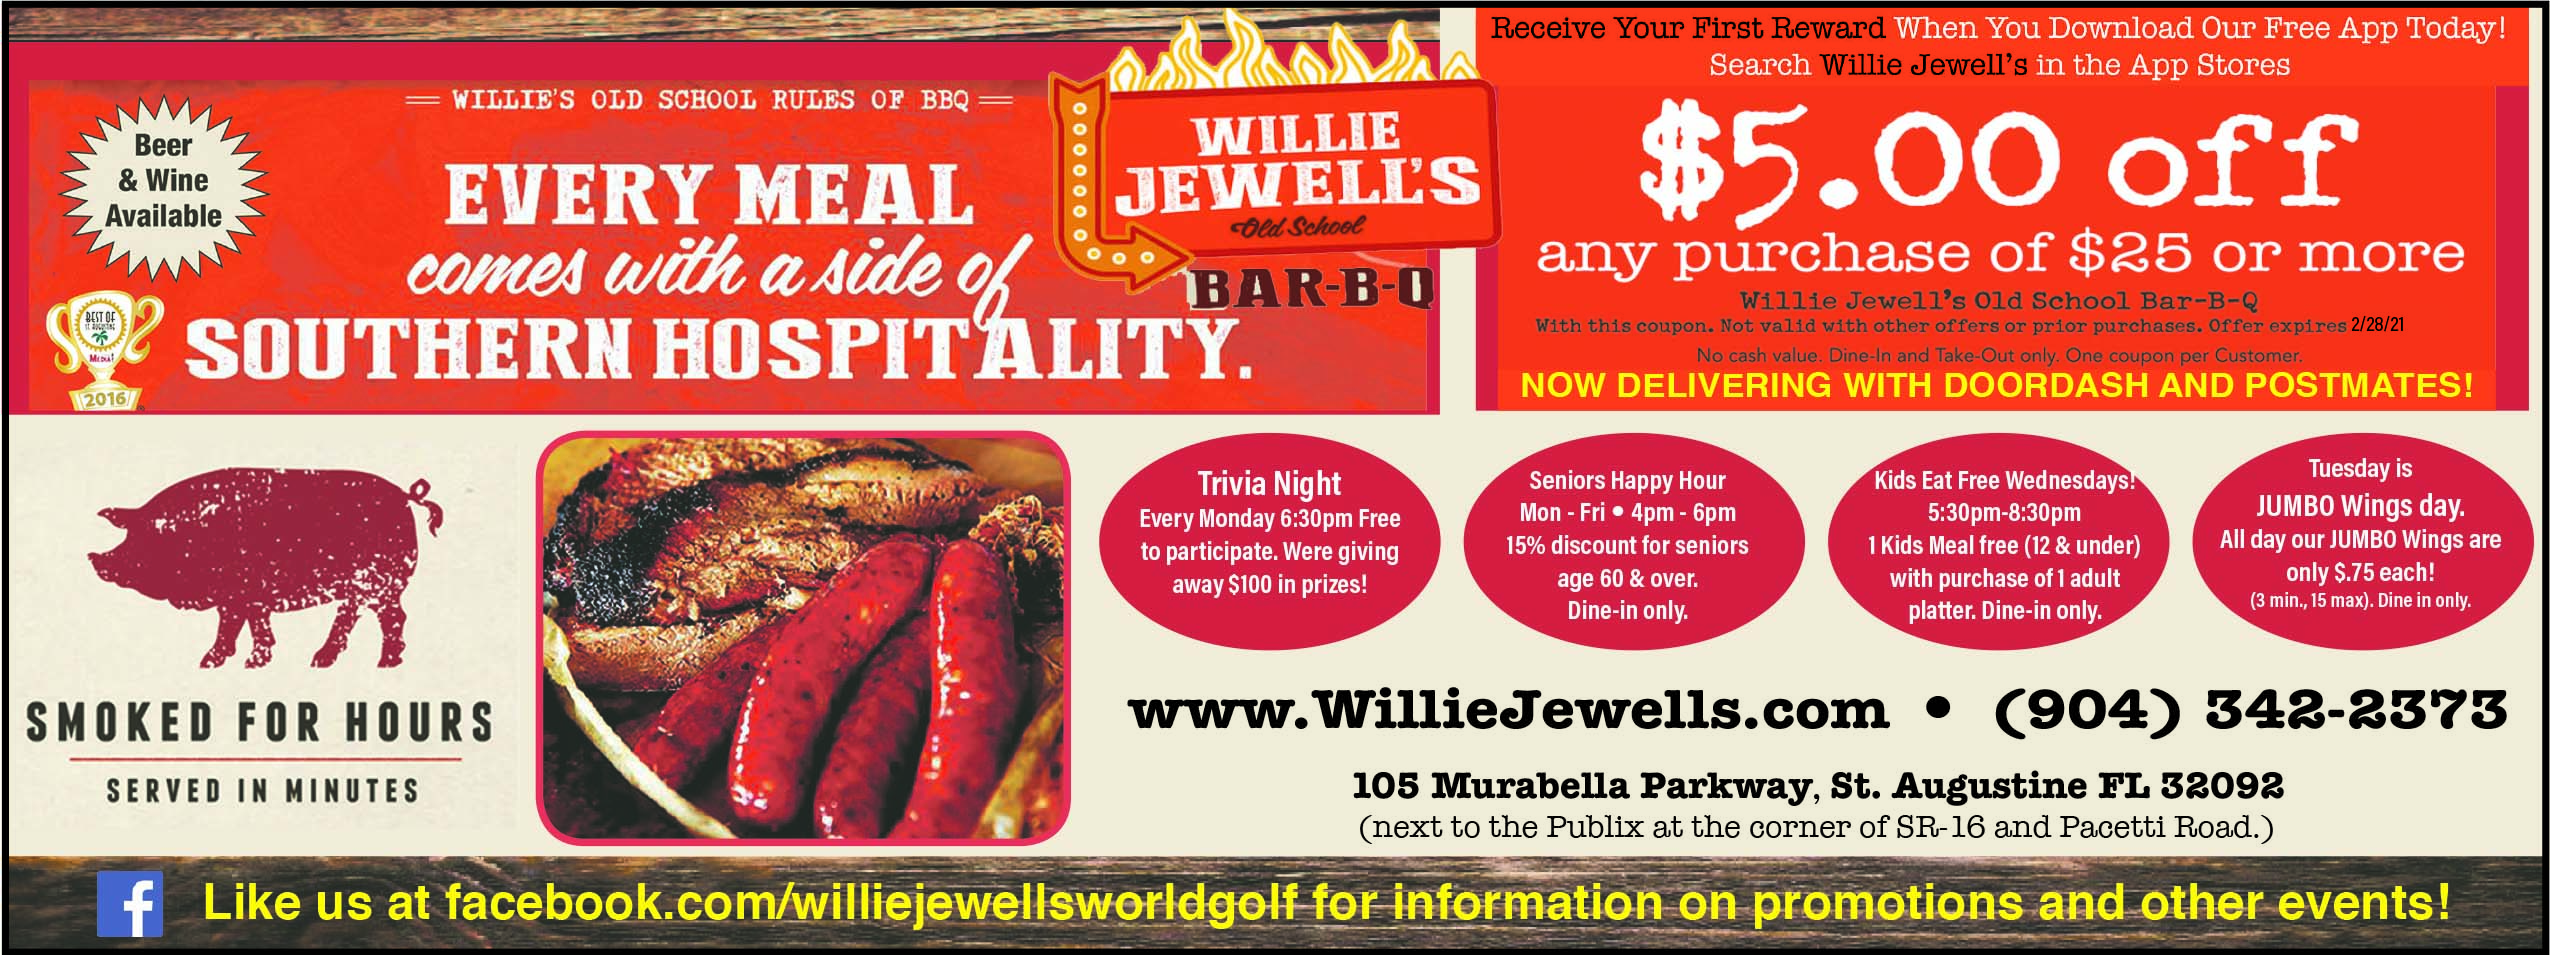 Willie Jewell's BBQ! Every meal comes with a side of southern hospitality